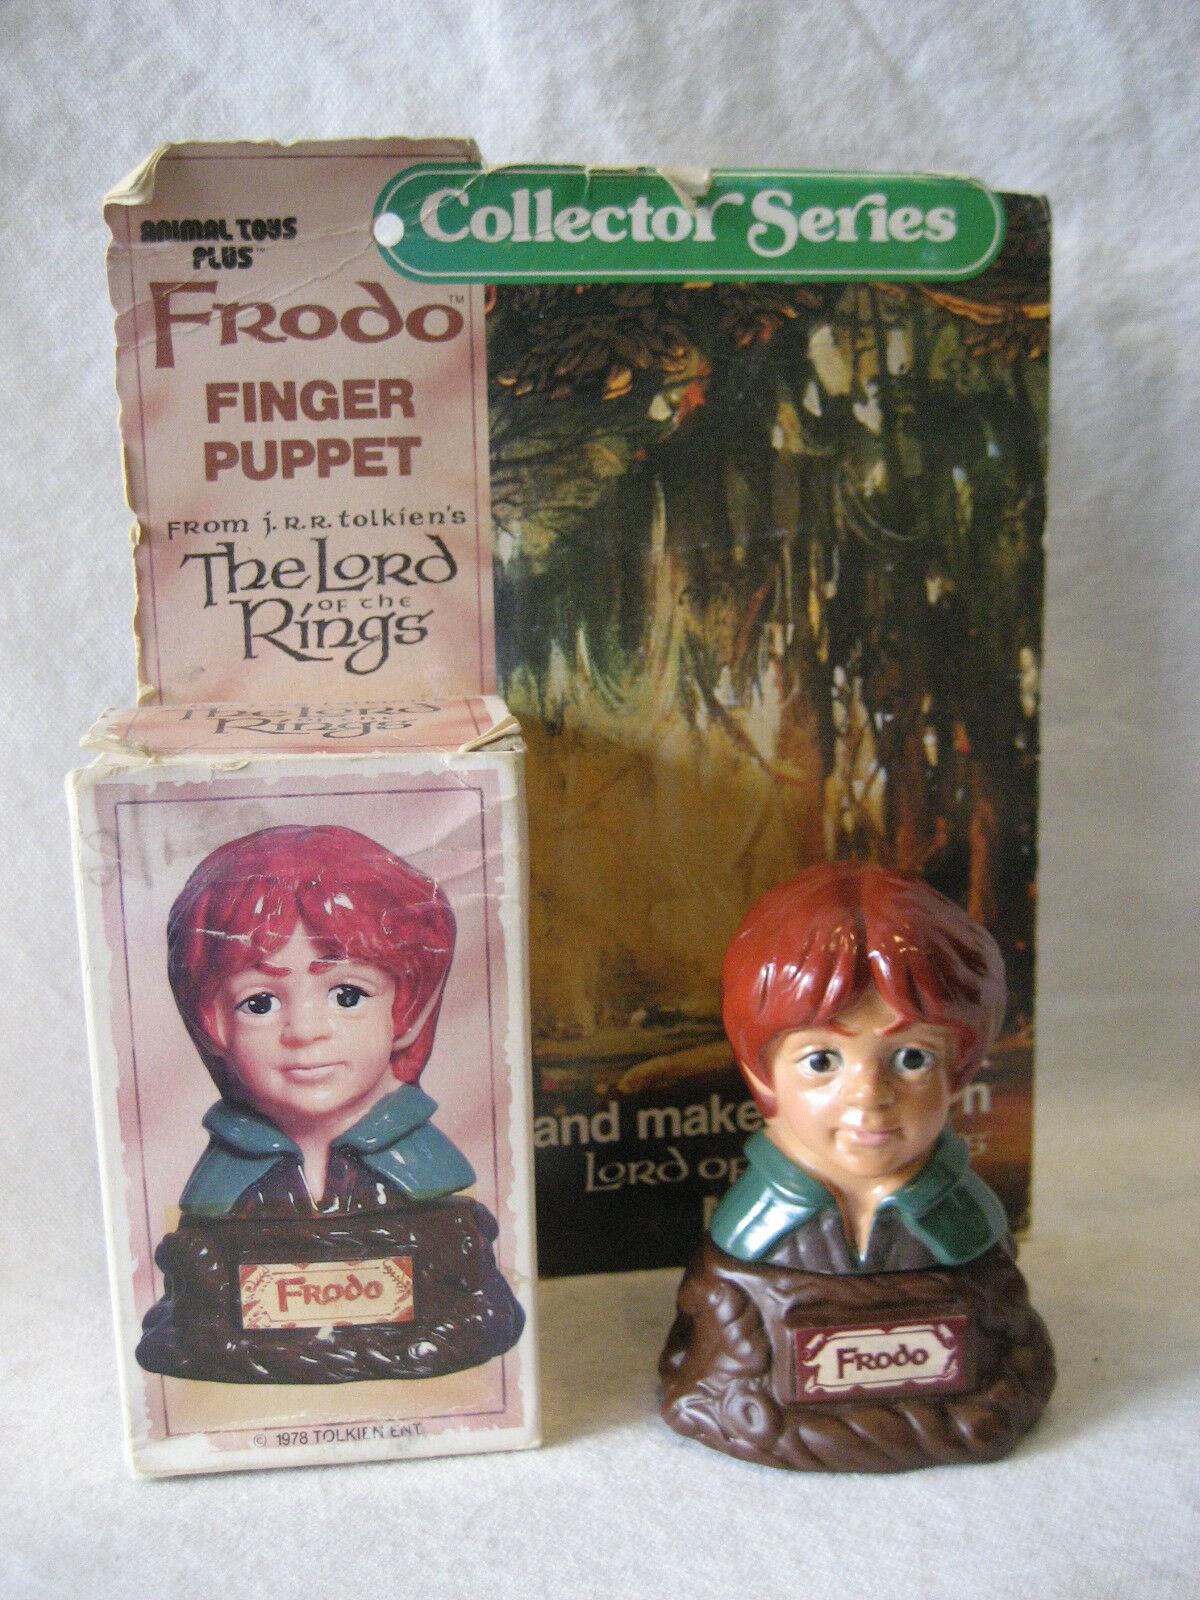 FRODO vintage LOTR Finger Puppet figure 1978 Tolkien Lord of the Rings w/ BOX